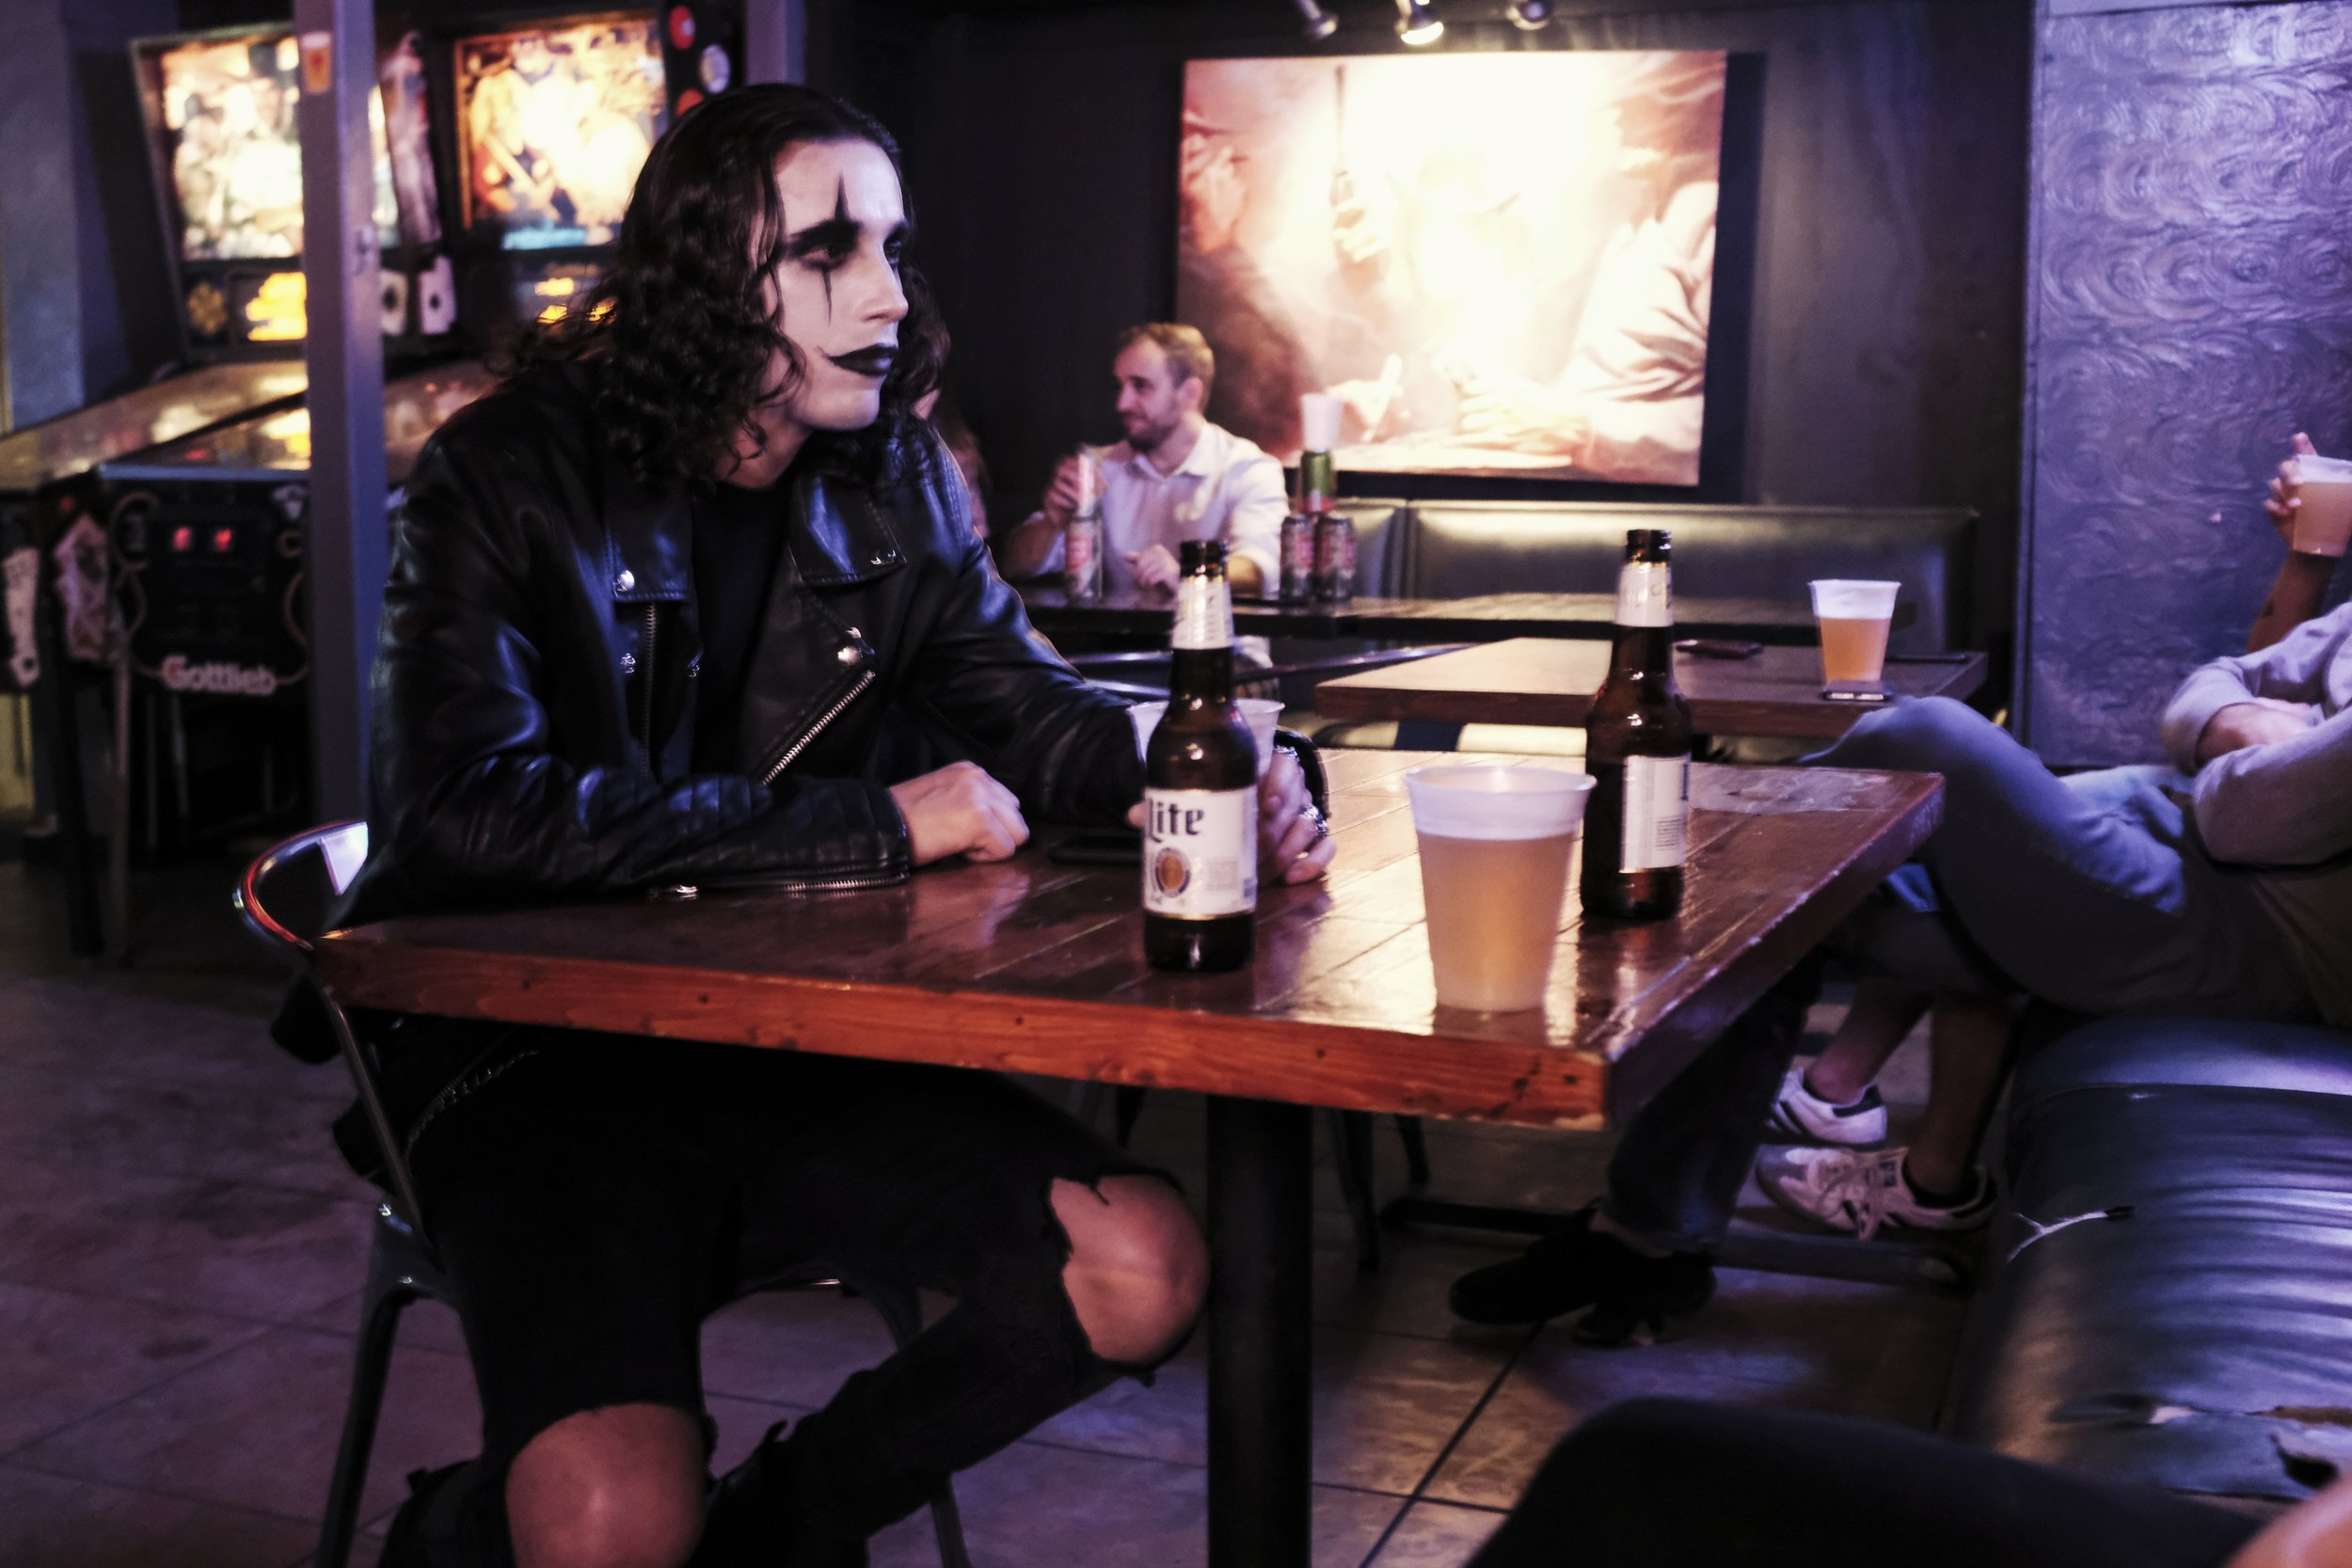 The Crow, having a beer - Austin, TX - Shot With Fujifilm X100F